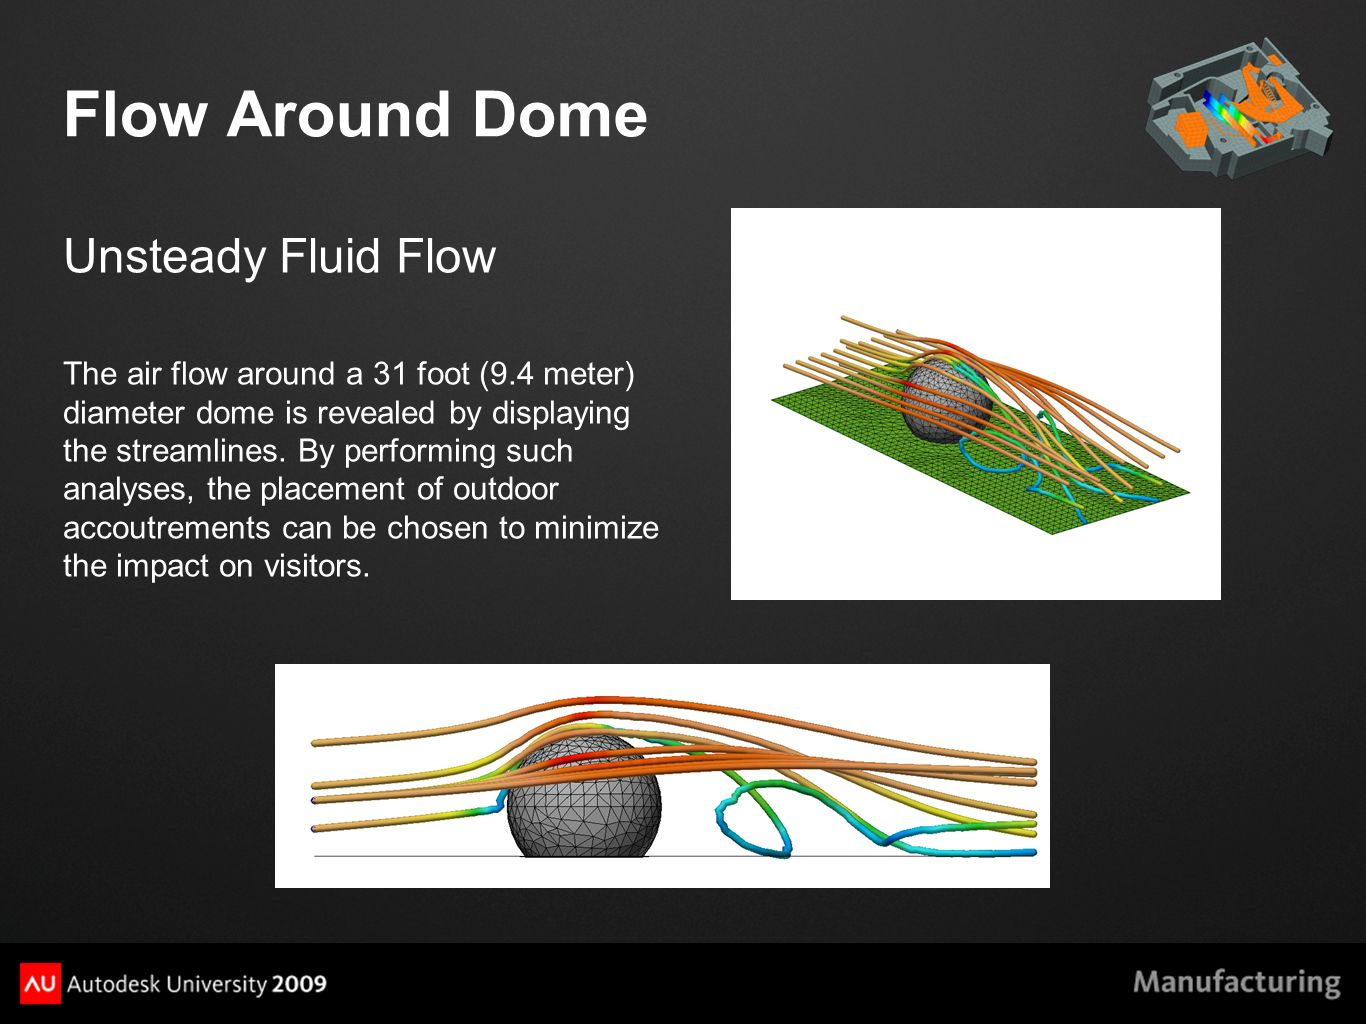 Flow Around Dome Unsteady Fluid Flow The air flow around a 31 foot (9.4 meter) diameter dome is revealed by displaying the streamlines.